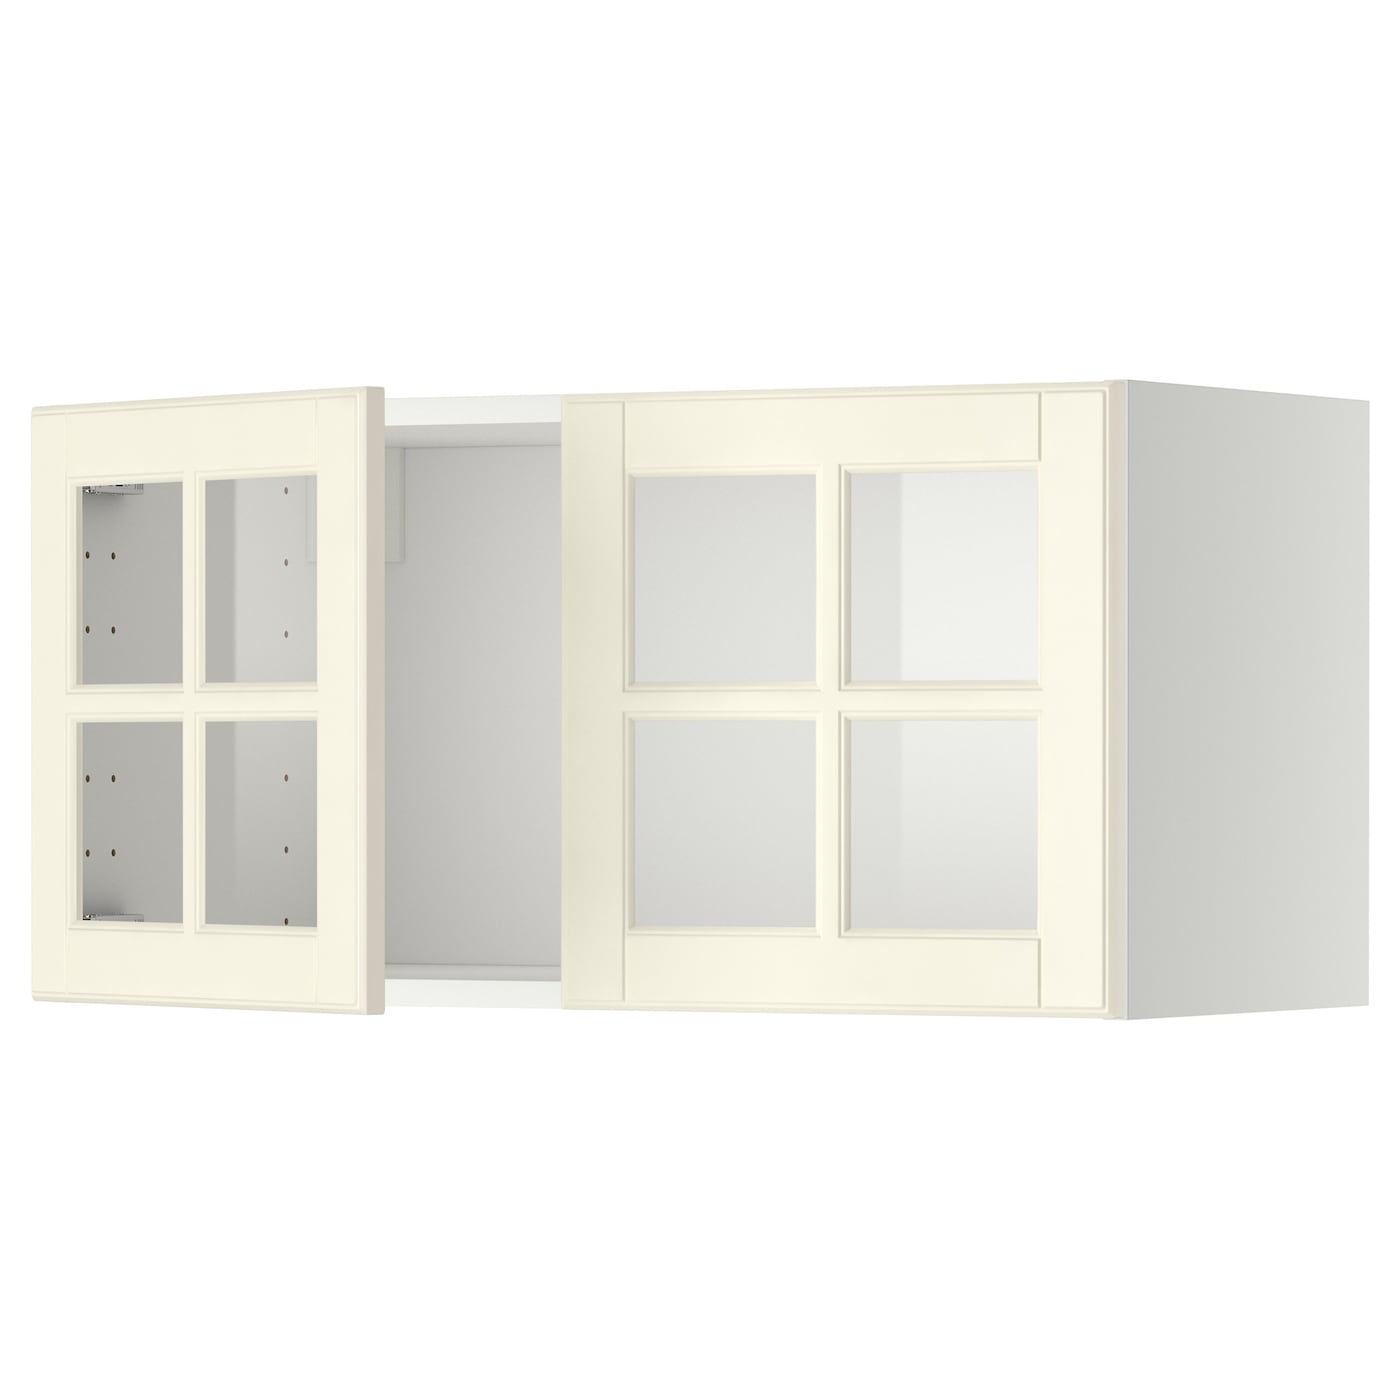 Wall cabinets kitchen wall units ikea for Glass kitchen wall units